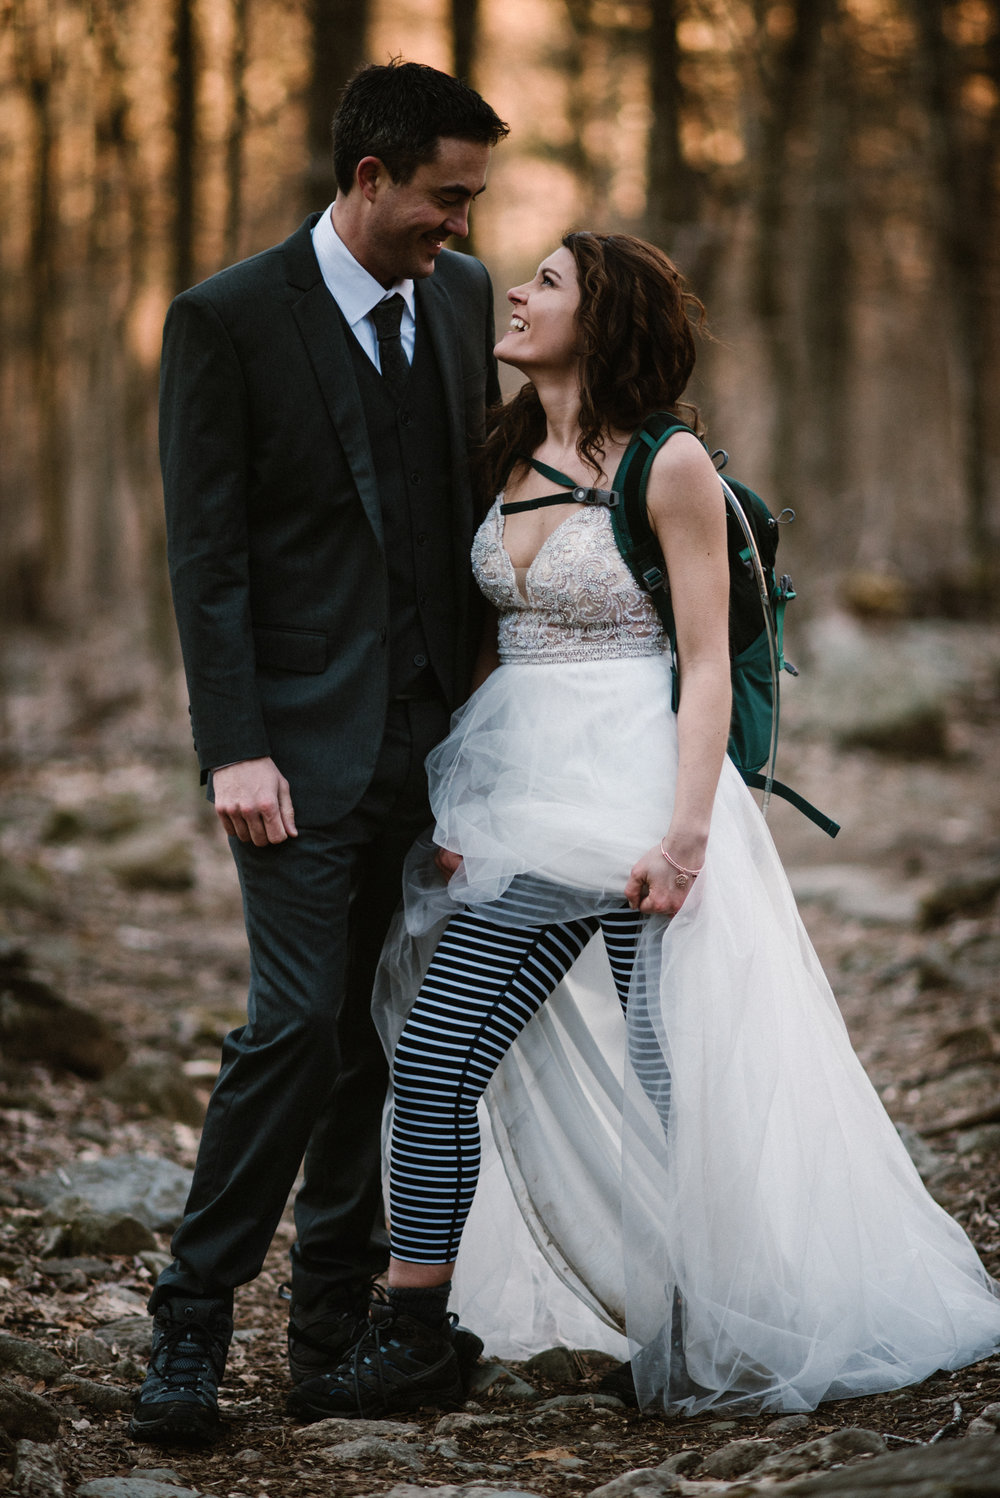 Stephanie and Steve - Shenandoah National Park Elopement - Sunrise Hiking Elopement - Adventurous Elopement - Virginia Elopement Photographer - Shenandoah national Park Wedding Photographer - White Sails Creative_41.jpg